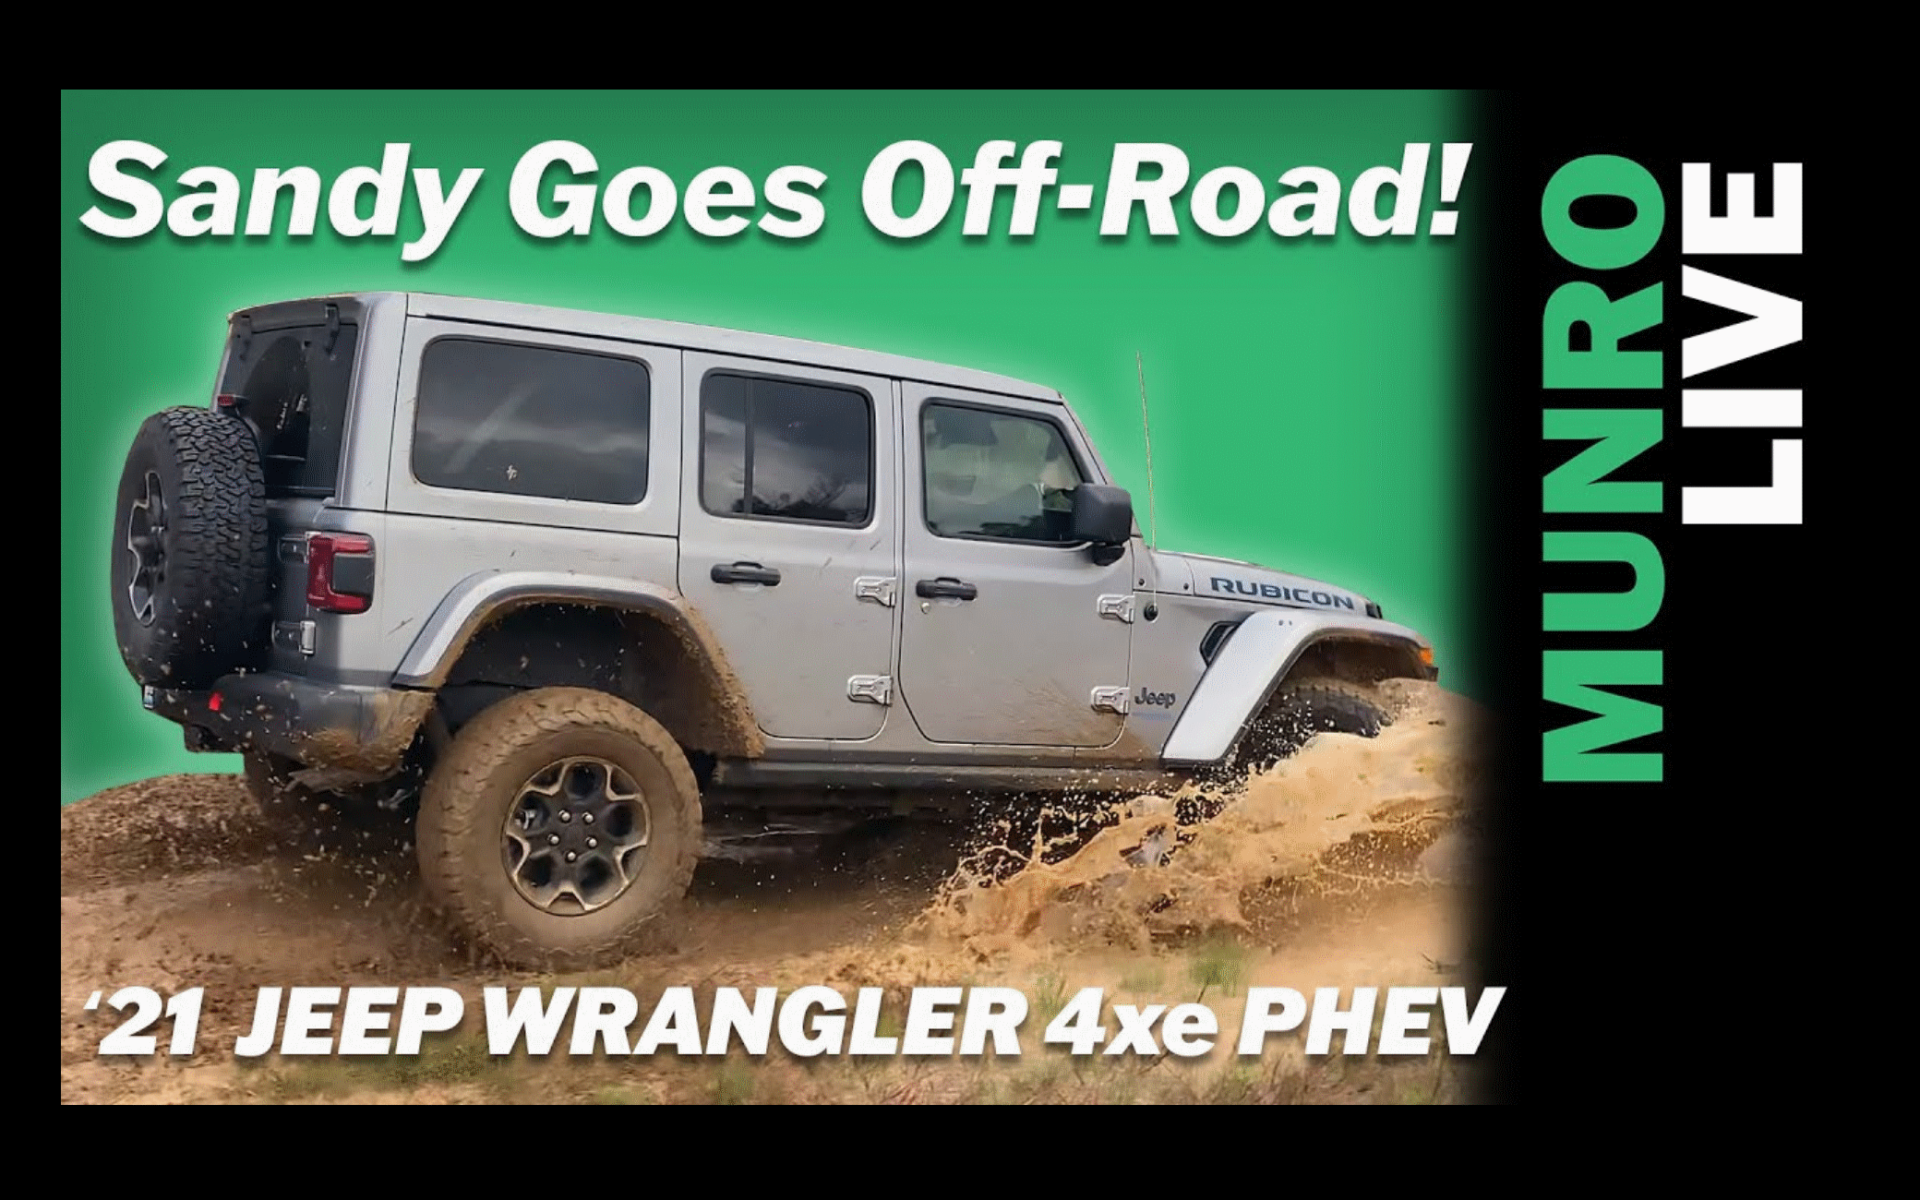 Jeep Wrangler 4xe Off-roading with Sandy Munro